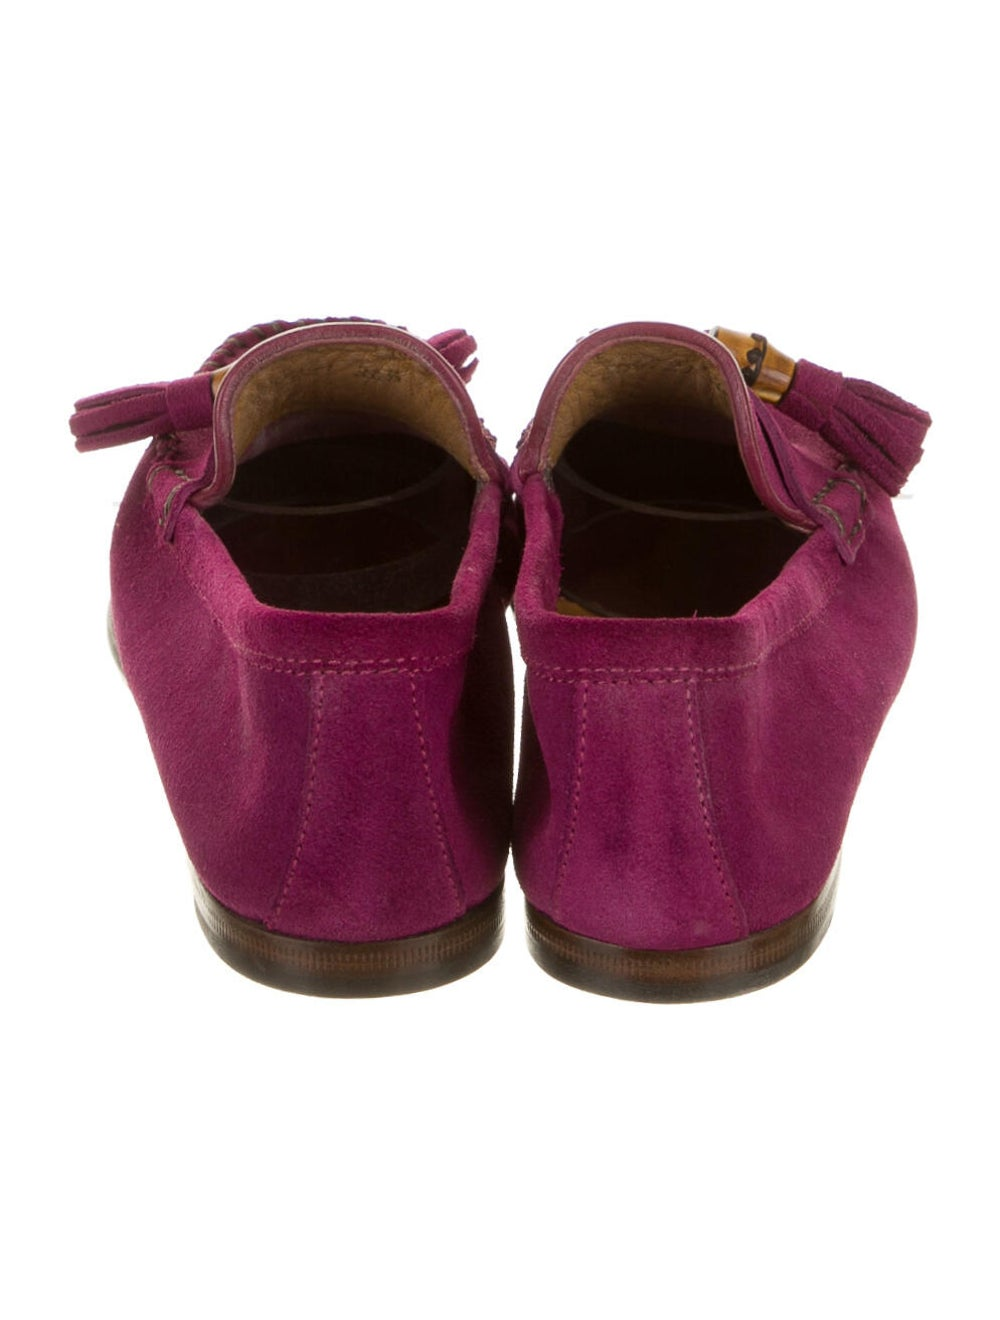 Gucci Suede Loafers Purple - image 4